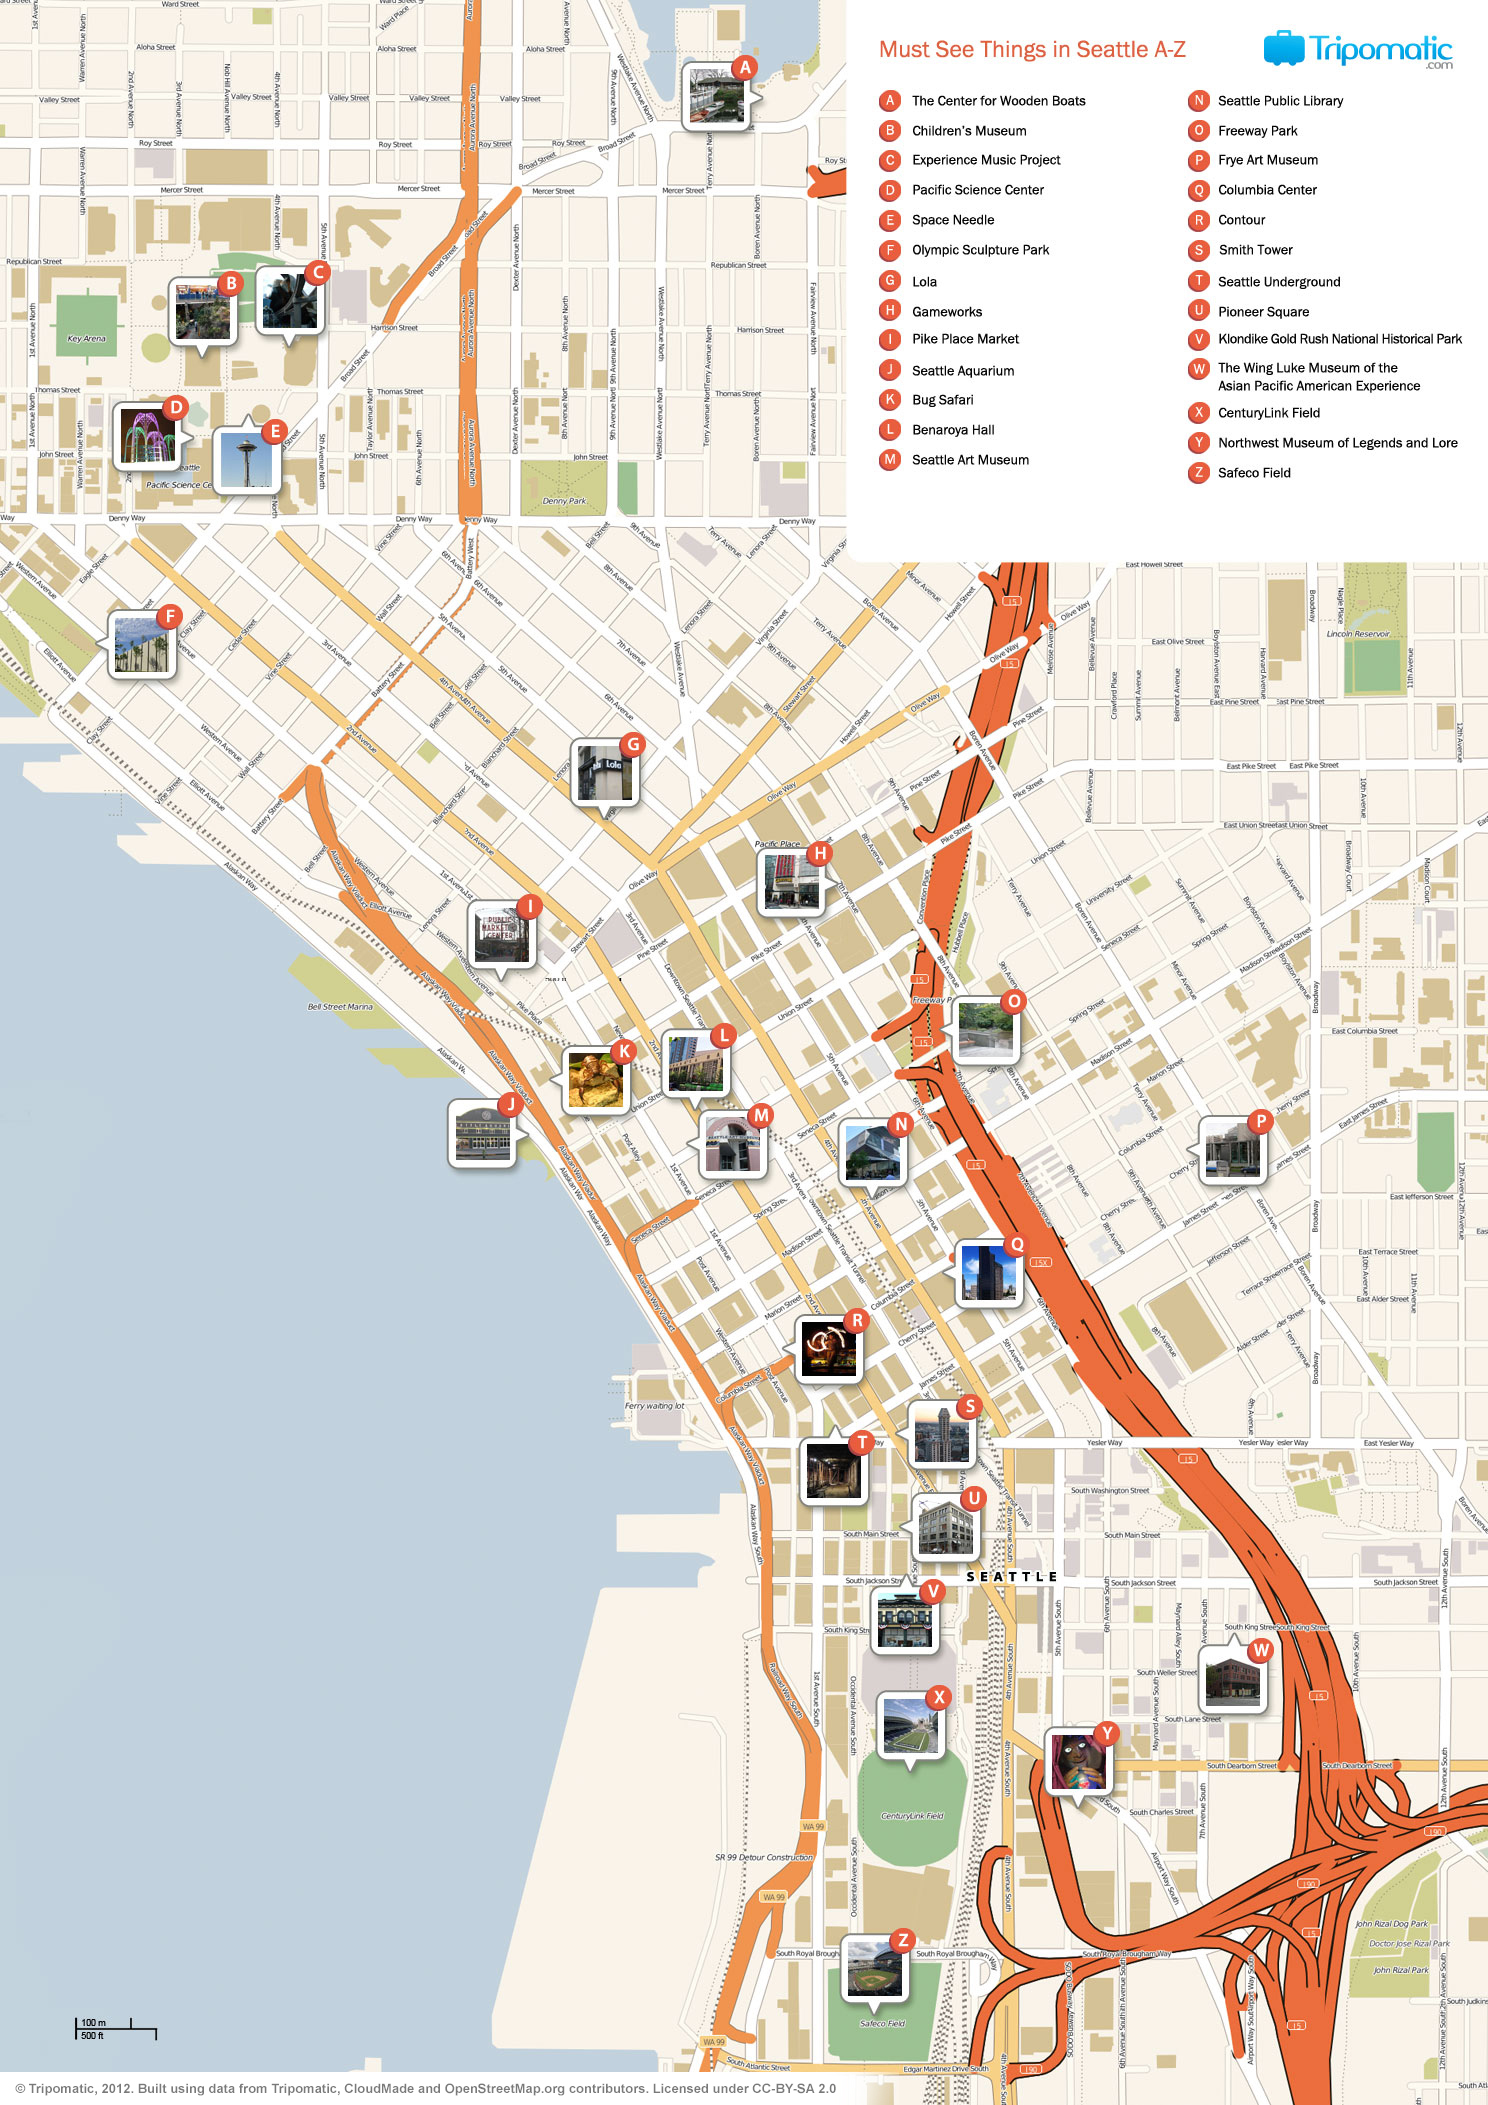 Seattle Attractions Map File:Seattle printable tourist attractions map.   Wikimedia Commons Seattle Attractions Map